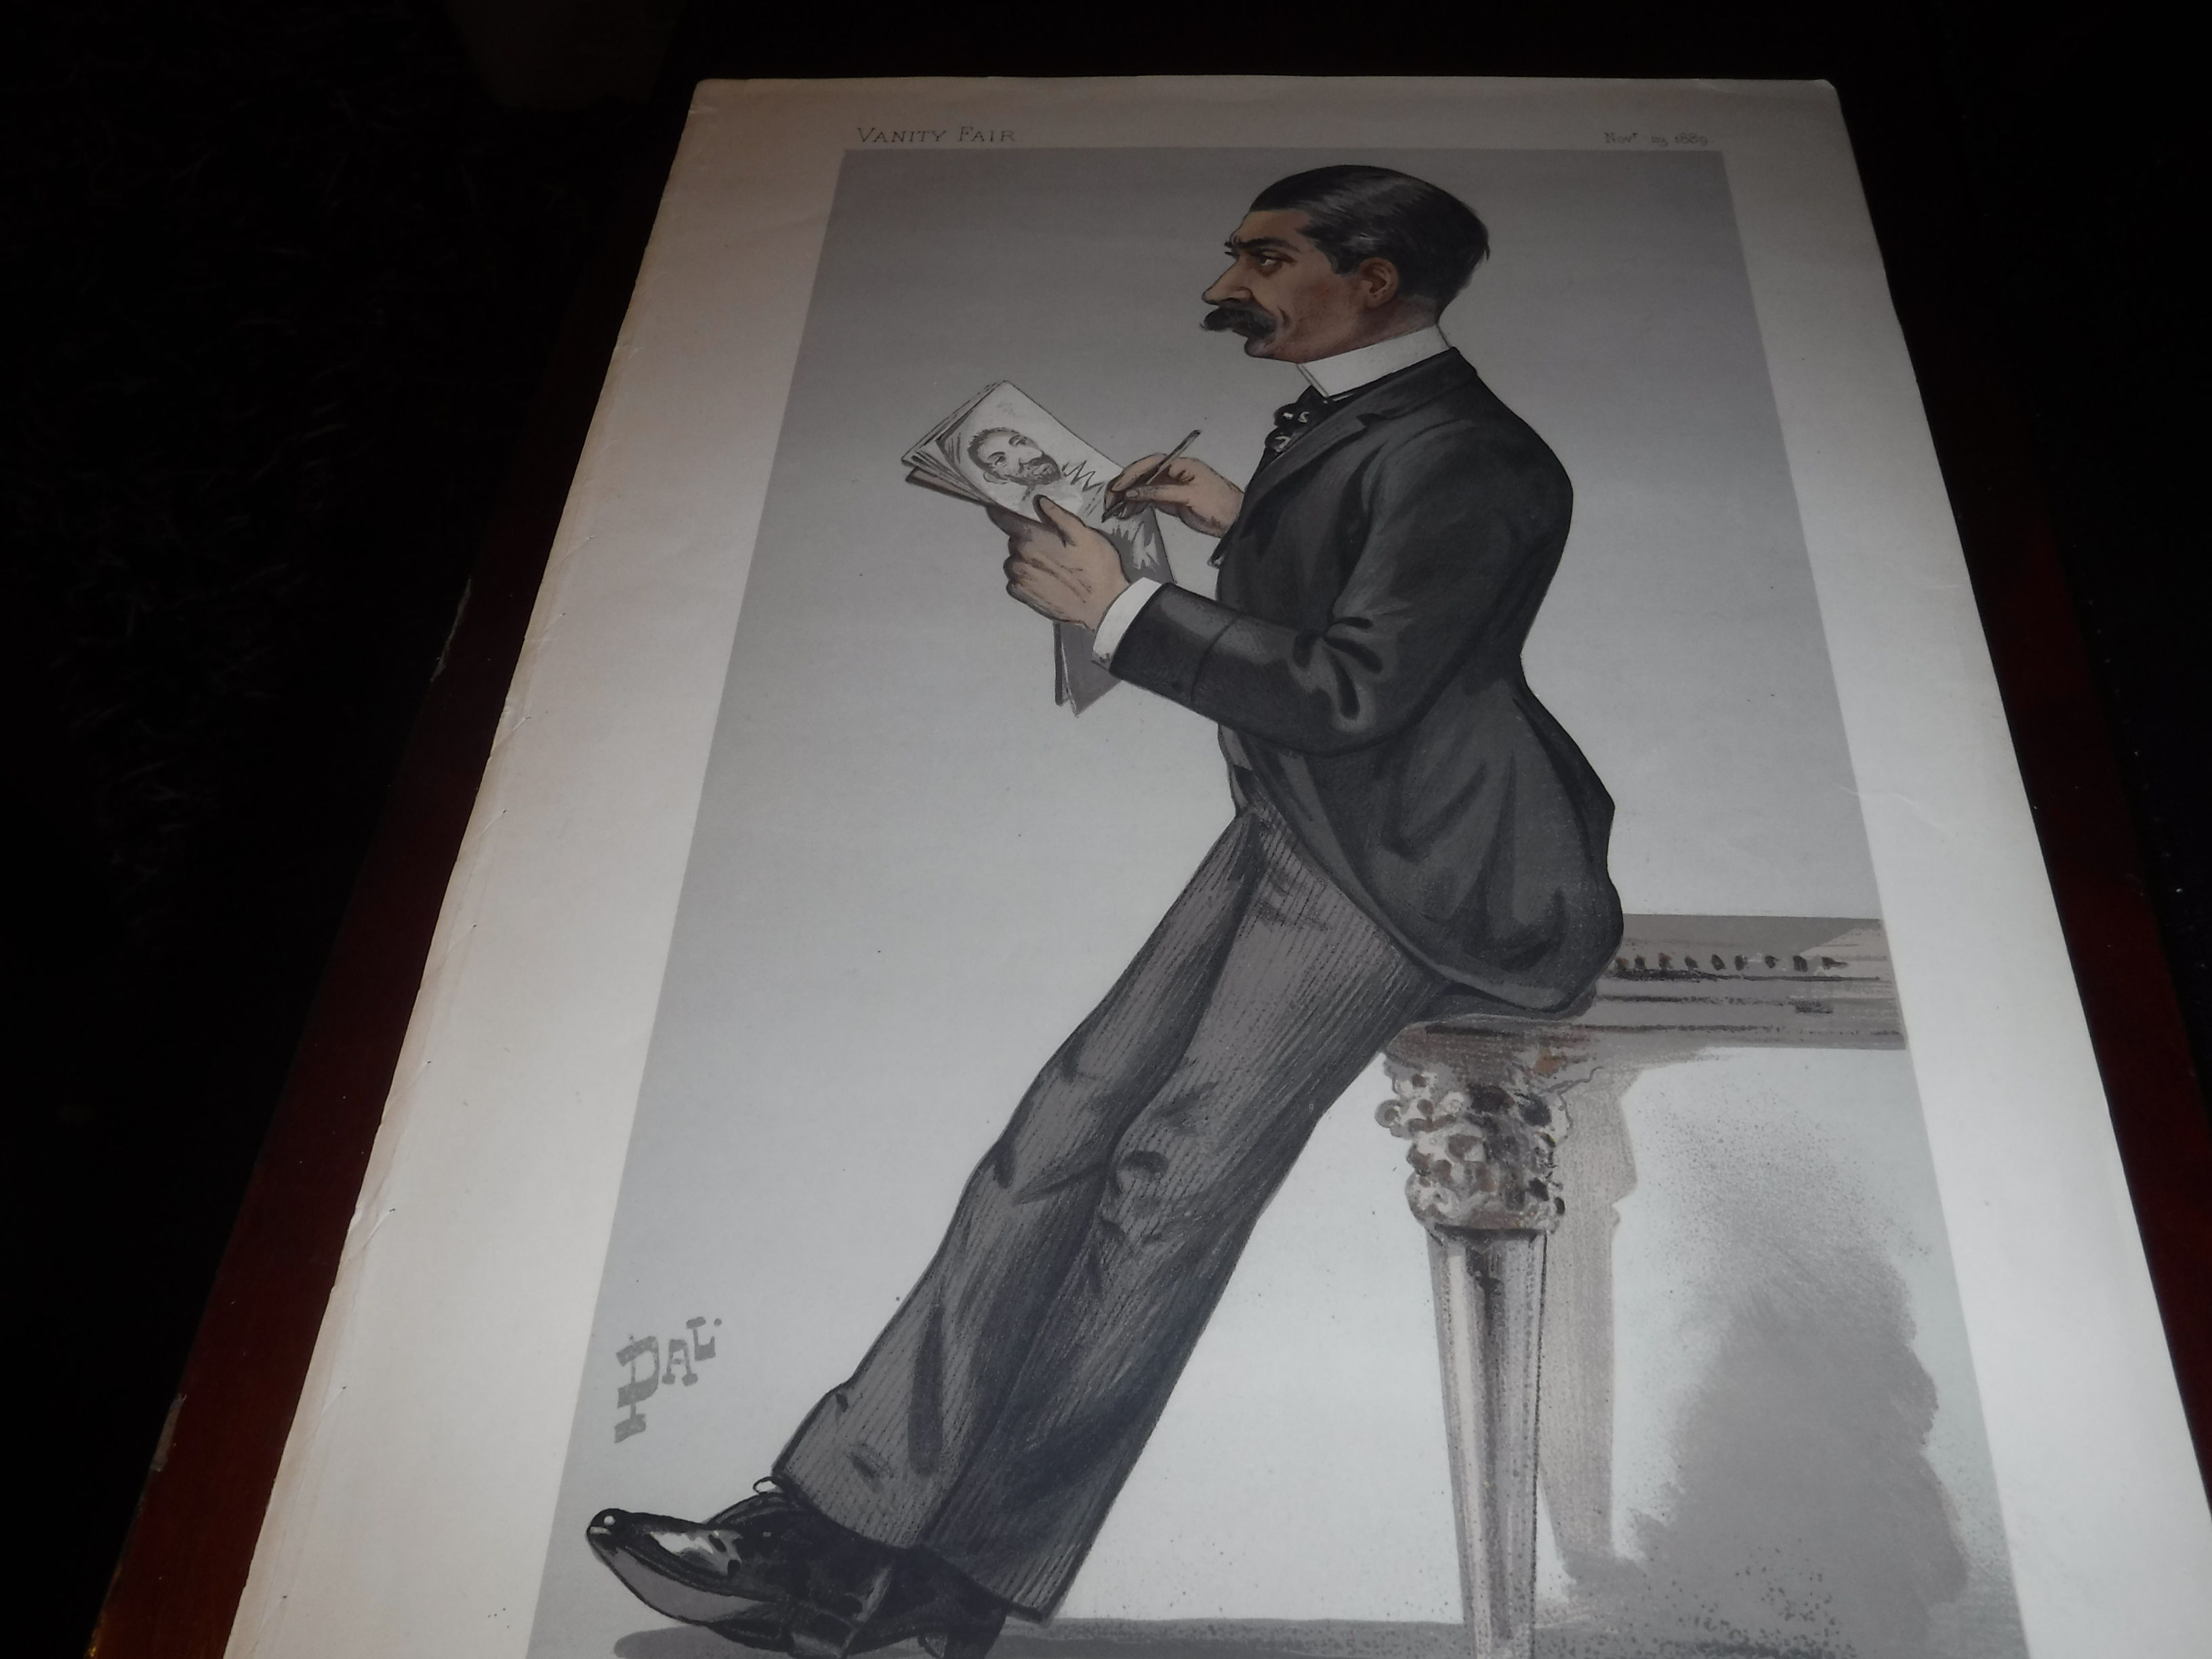 Spy By Vanity Fair Nov 23rd 1889